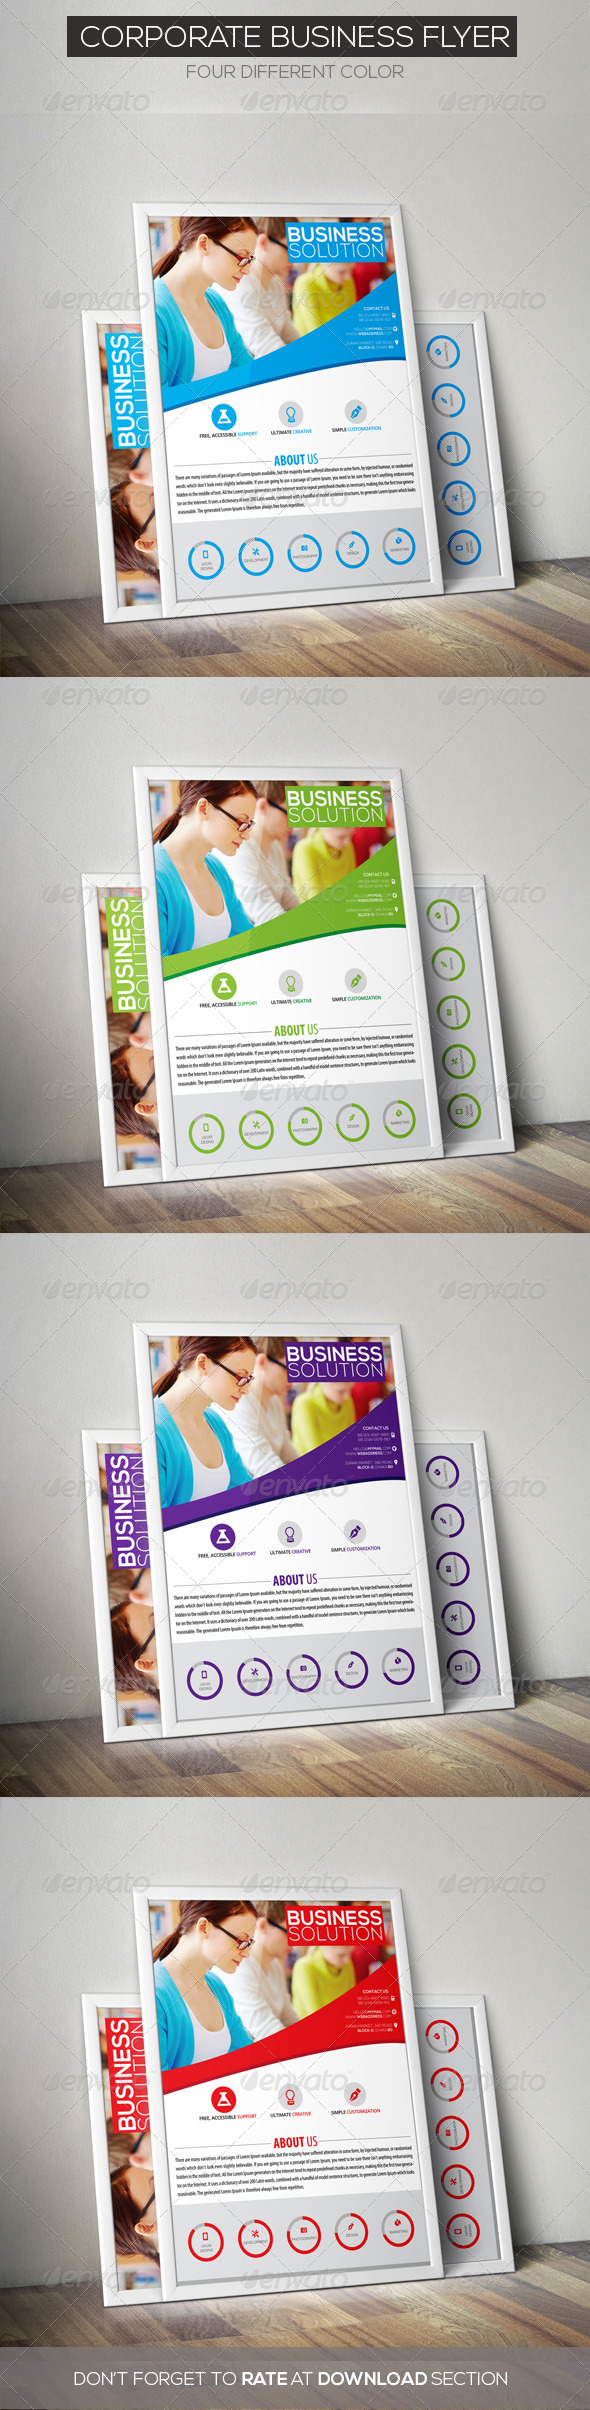 Corporate Business Flyer - Corporate Flyers